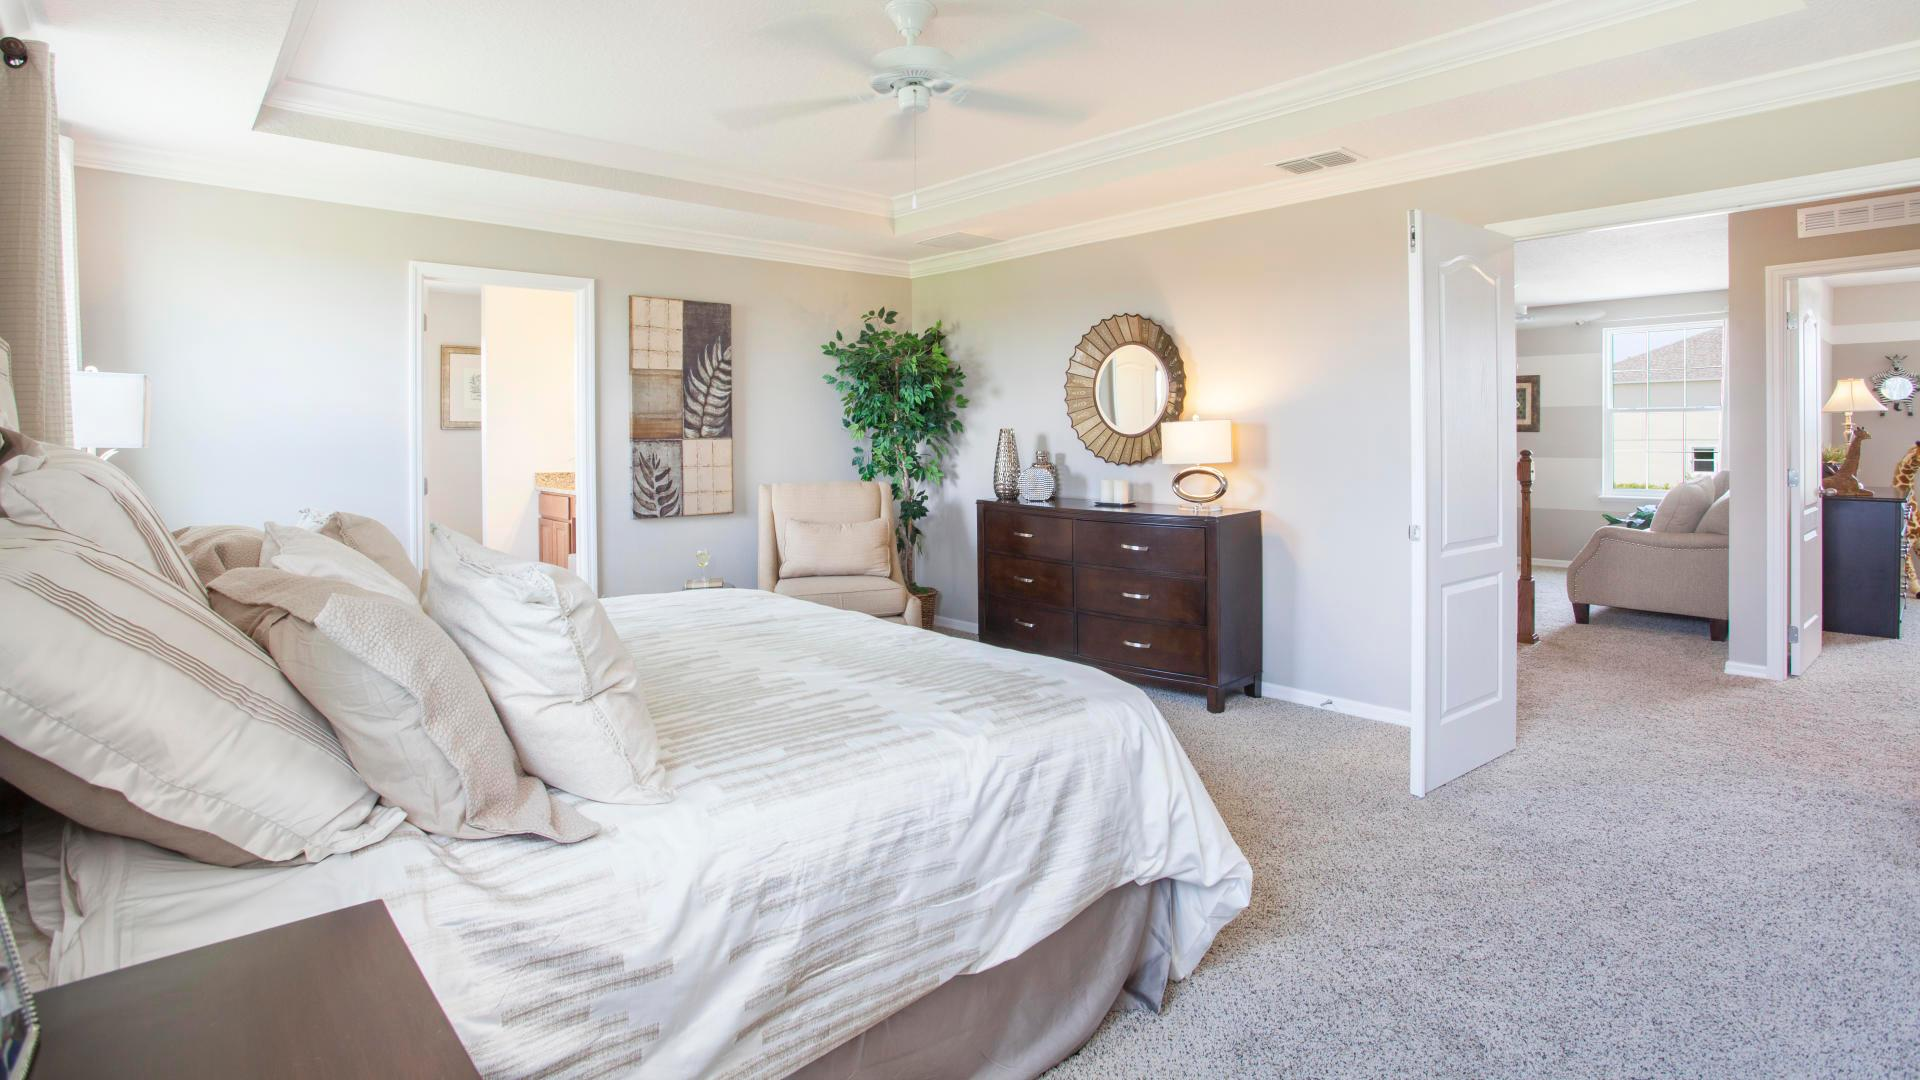 Bedroom featured in the Rockford By Maronda Homes in Melbourne, FL